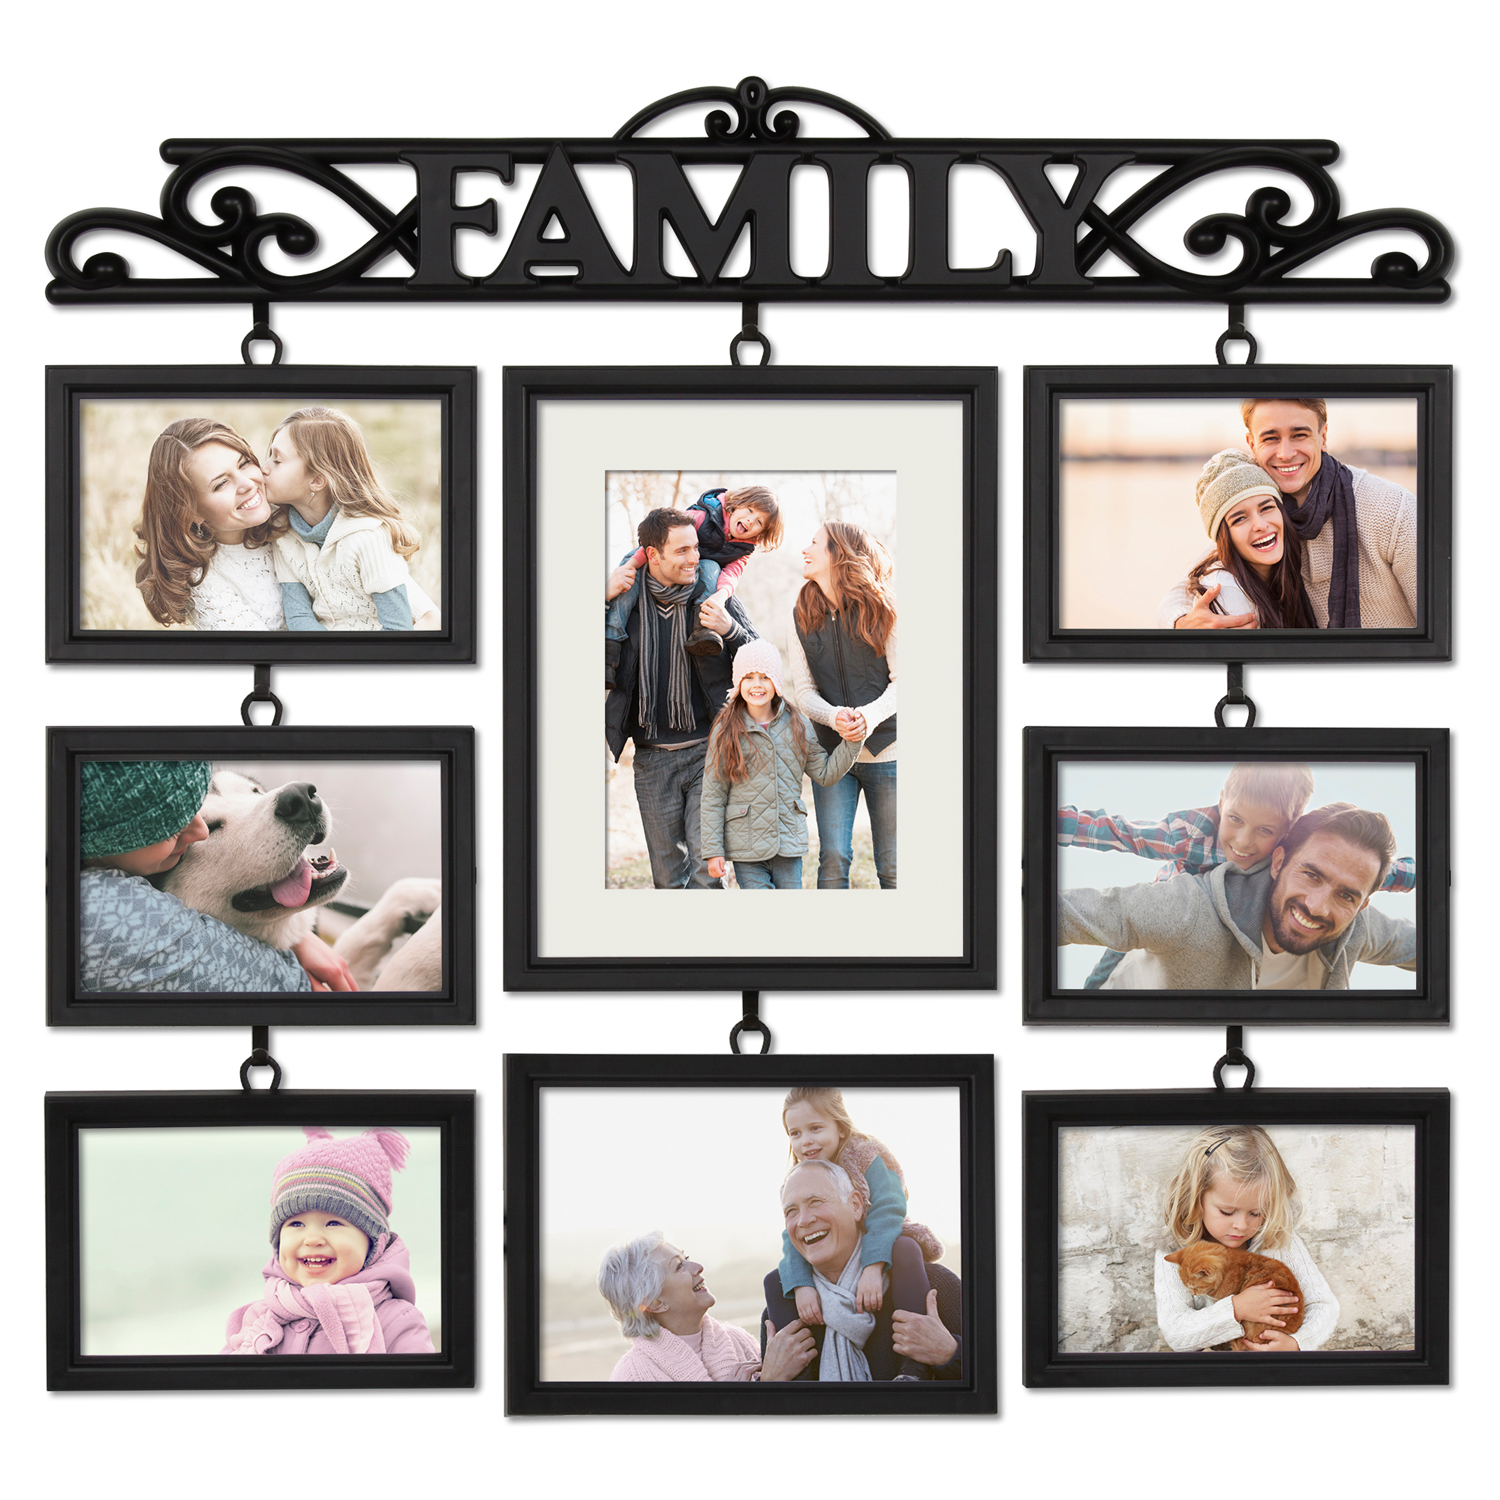 Mainstays 8 Opening Family Collage Photo Frame - Black